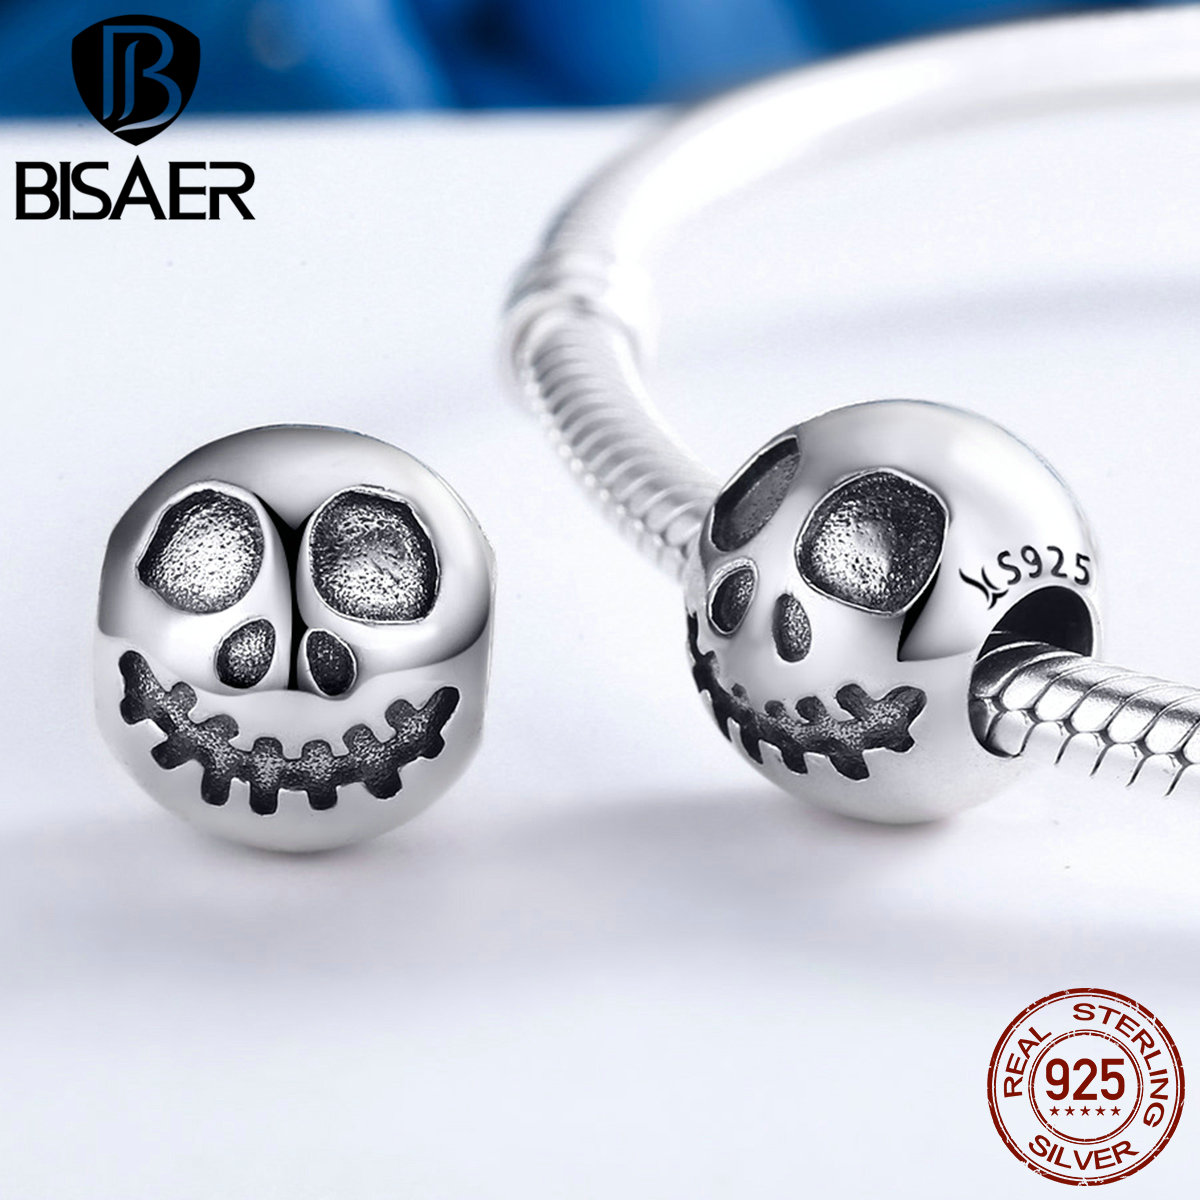 100% 925 Sterling Silver Rock Skull Ghost Face Bead Charms Fit Original BISAER Bracelets Women jewelry Accessories berloques